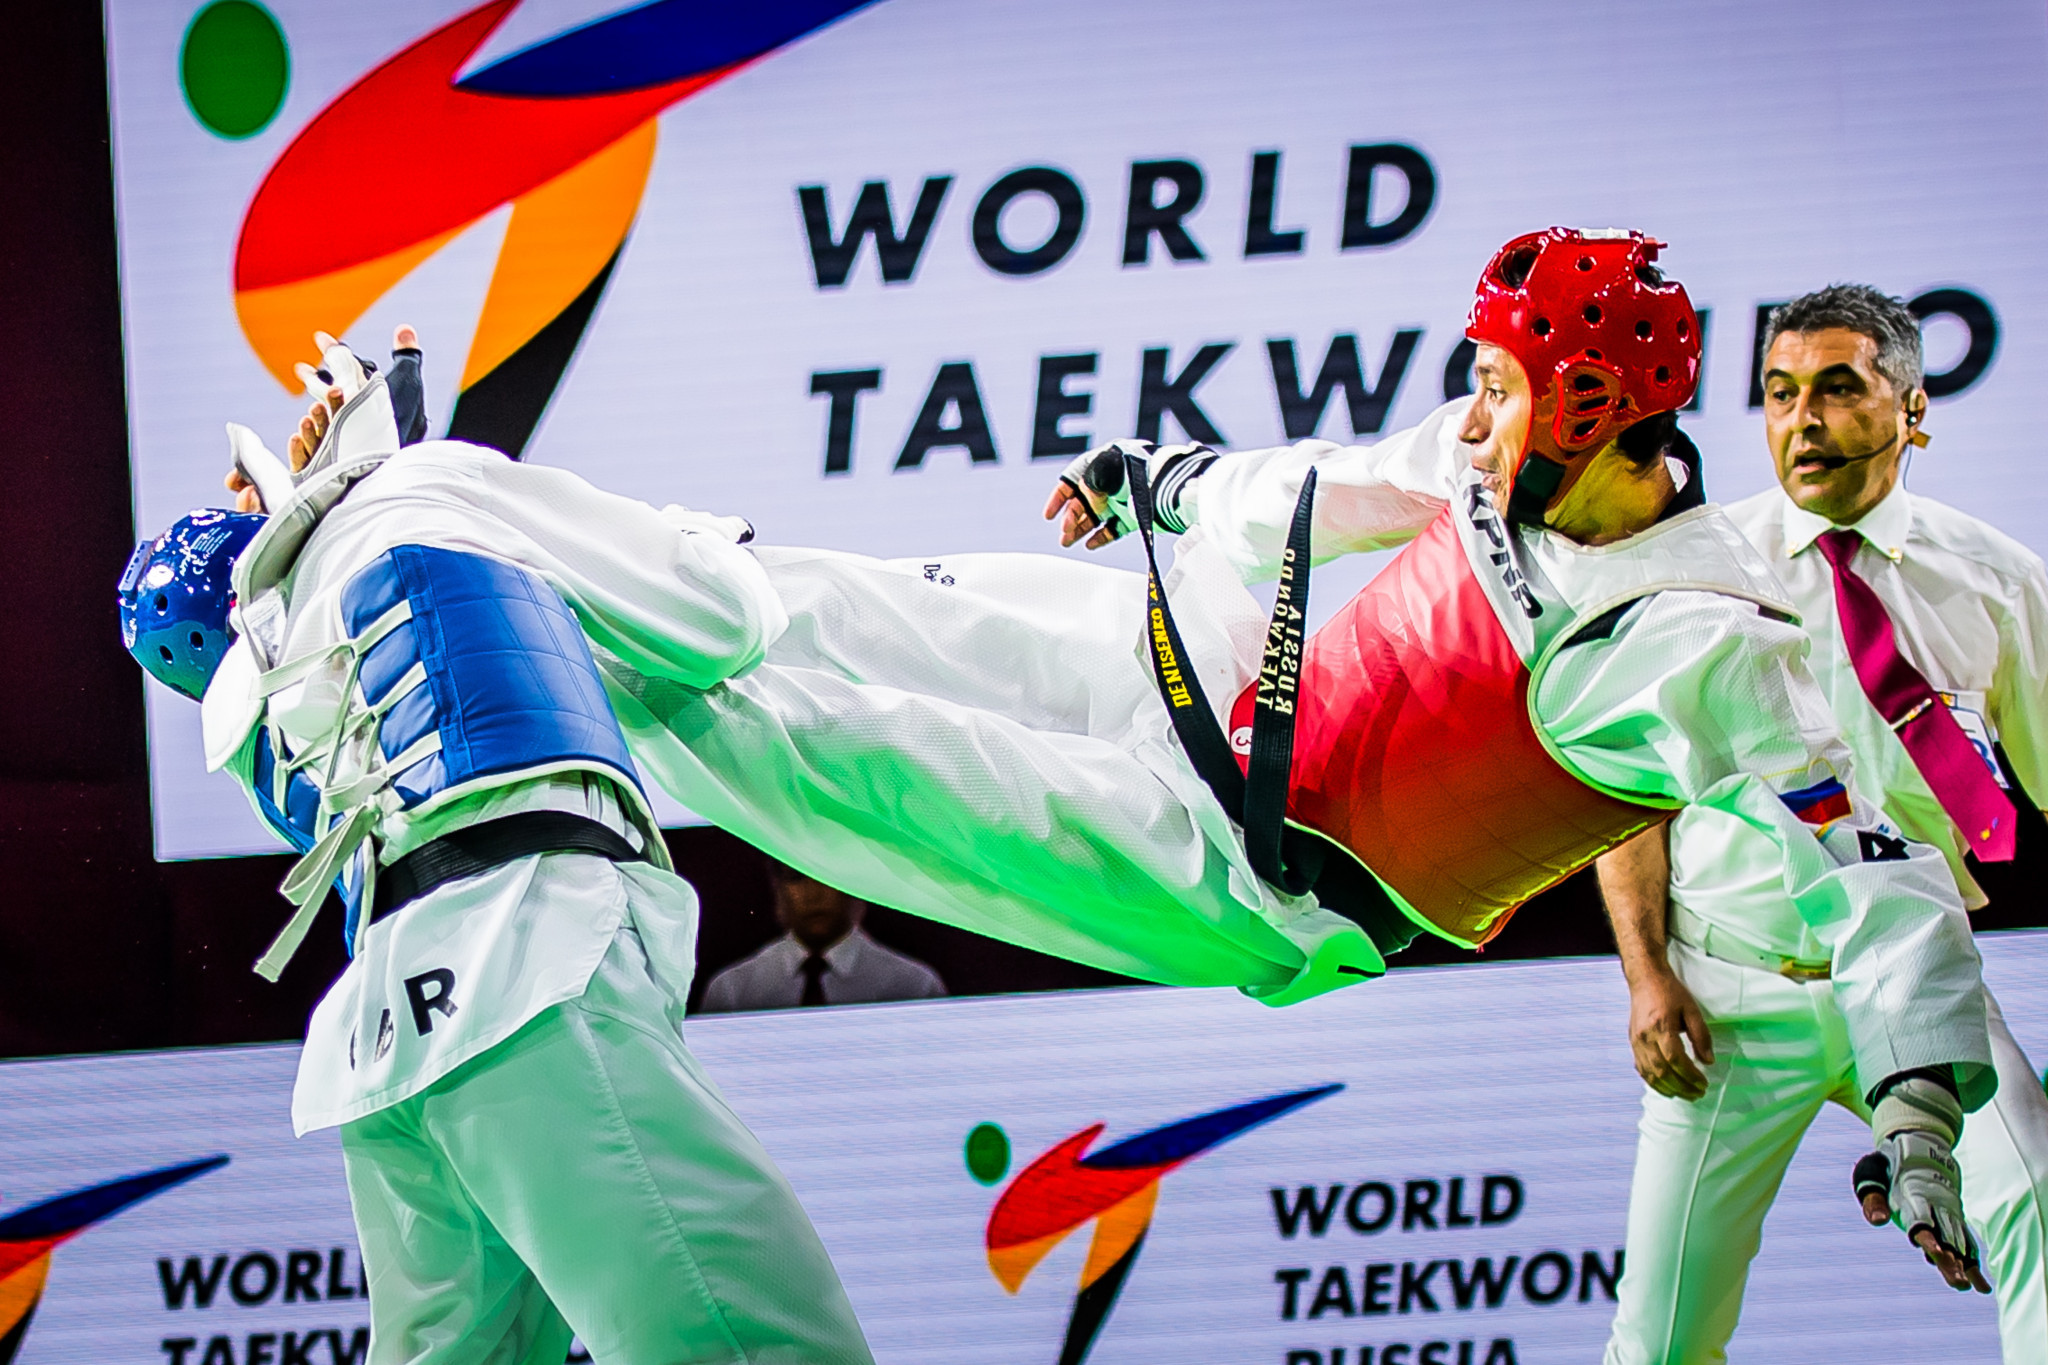 Olympic silver medallist Denisenko takes home win on opening day of World Taekwondo Grand Prix in Moscow